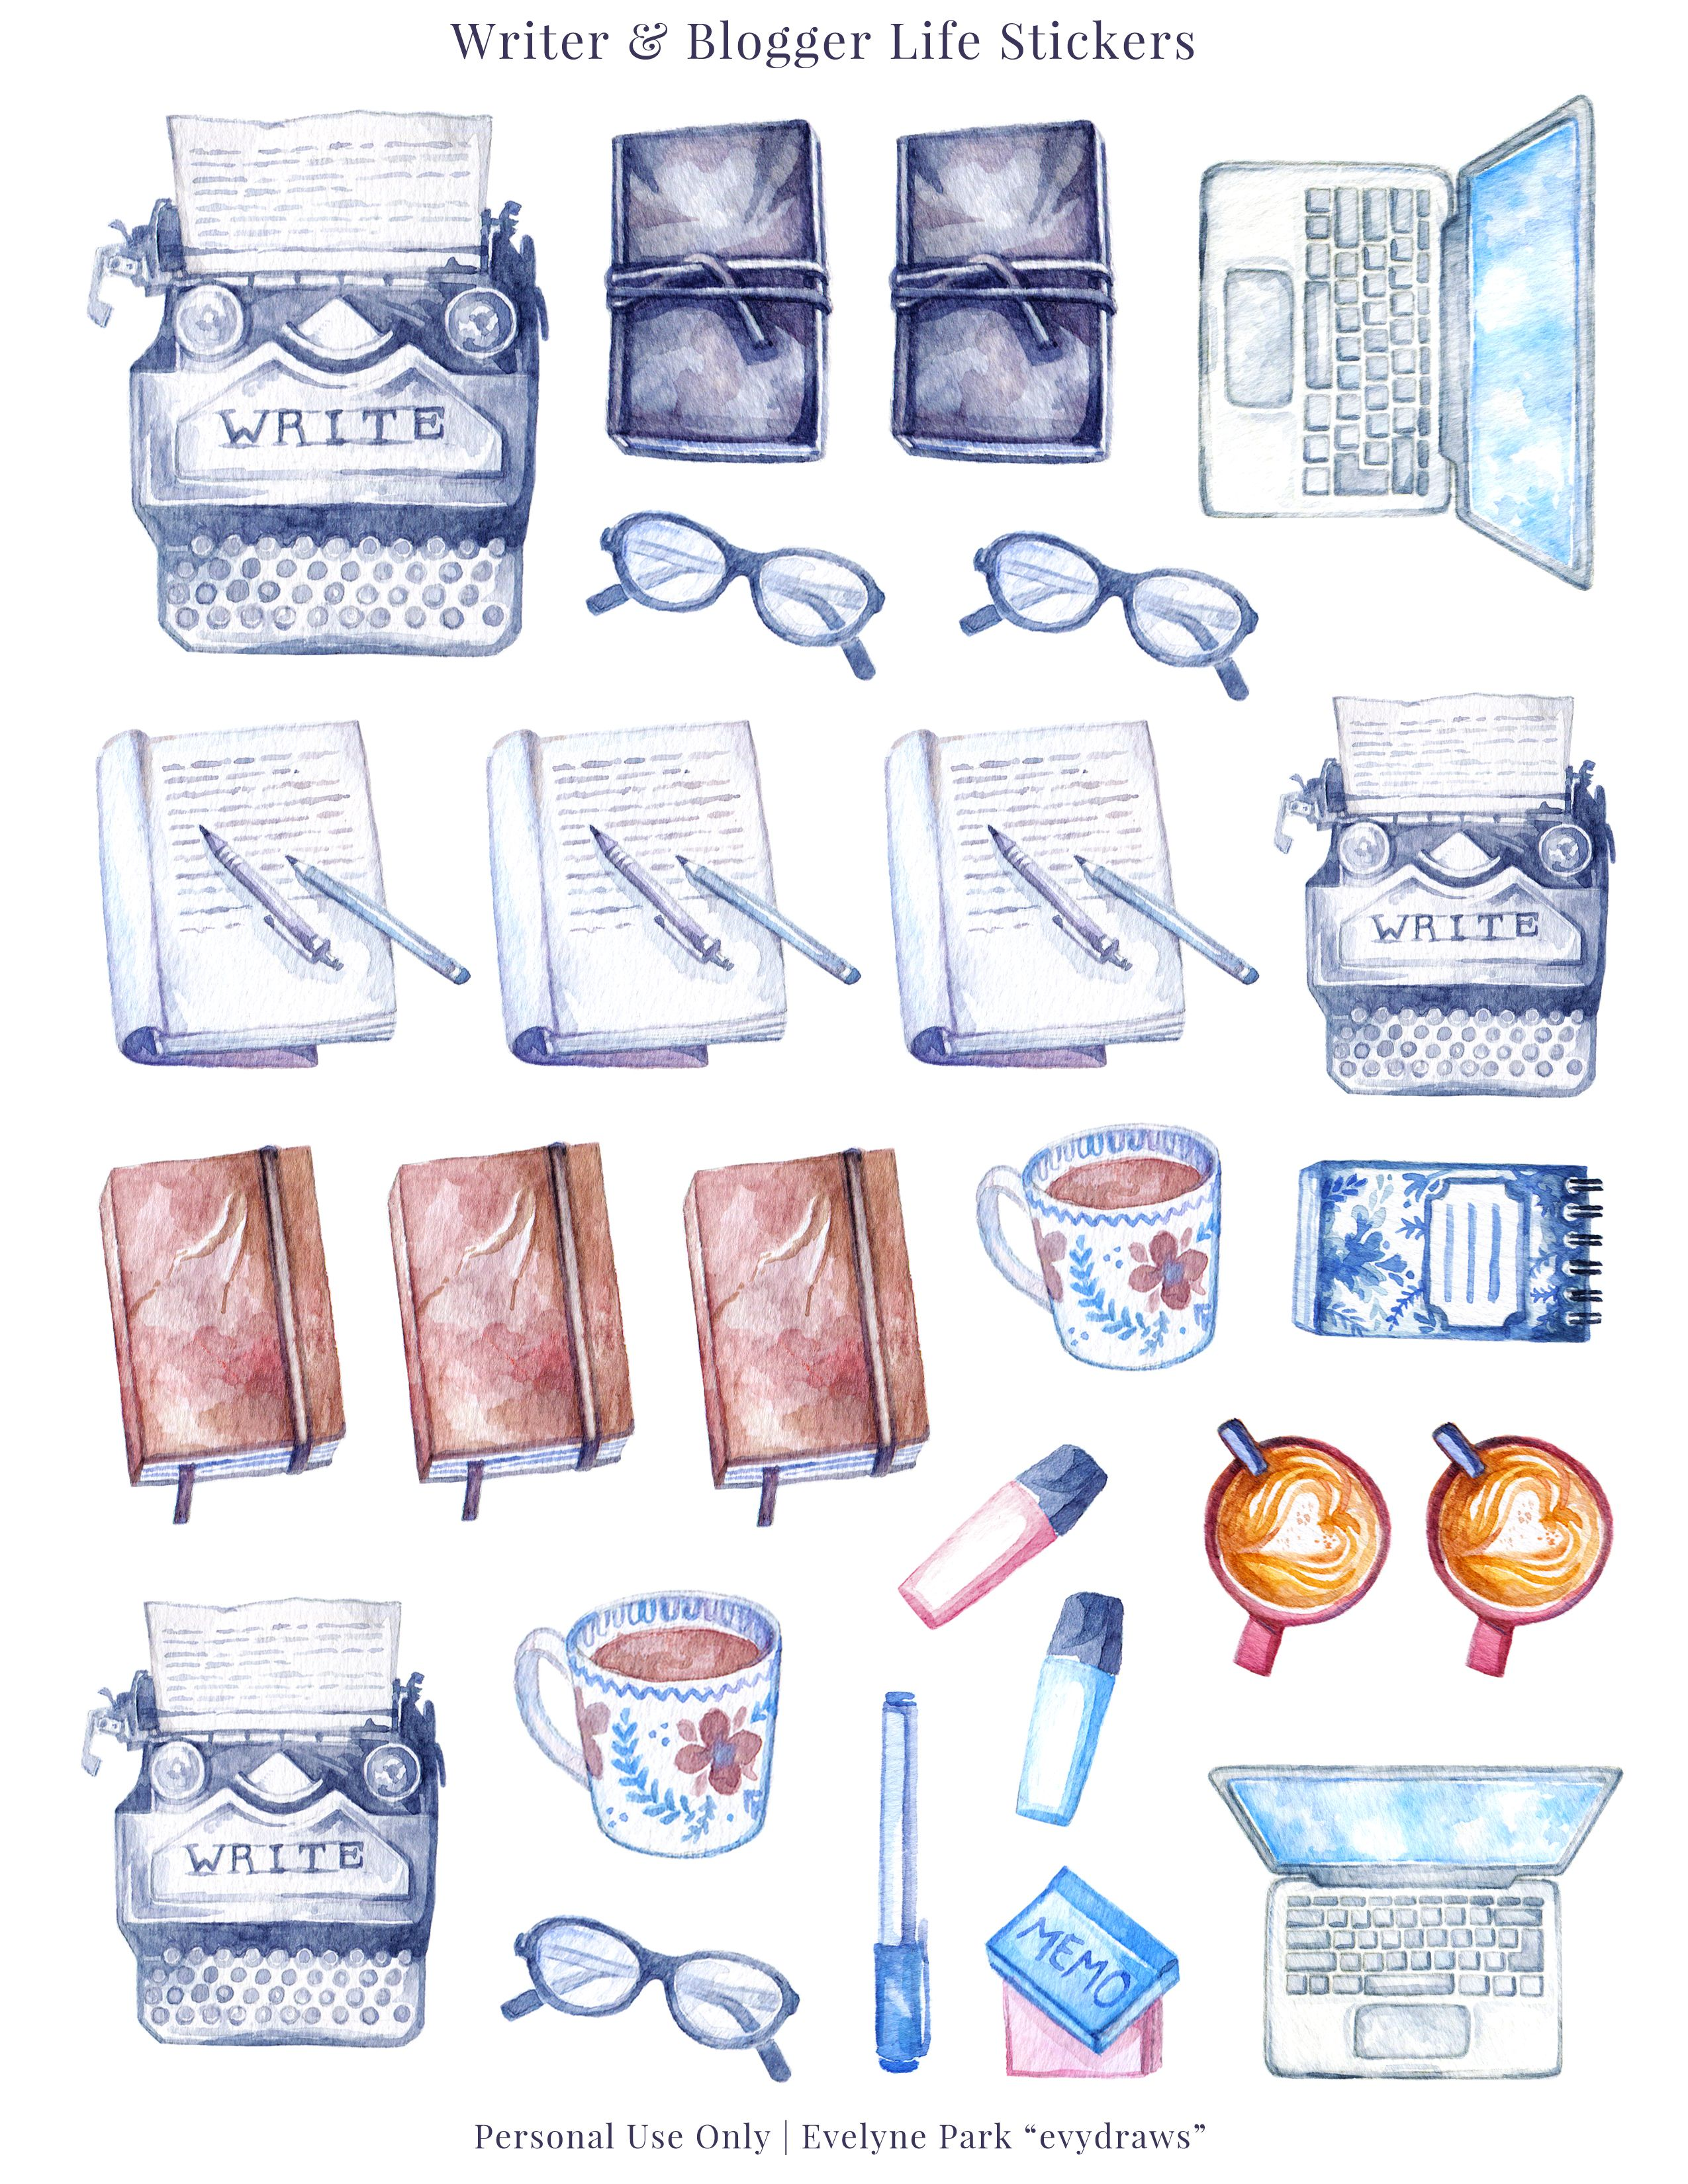 Blogging Writing Stickers Printable Typewriter Journals Coffee Planner Nanowrimo Printables Blog Post Vintage Watercolour Art Watercolor Stickers Bullet Journal Stickers Planner Stickers